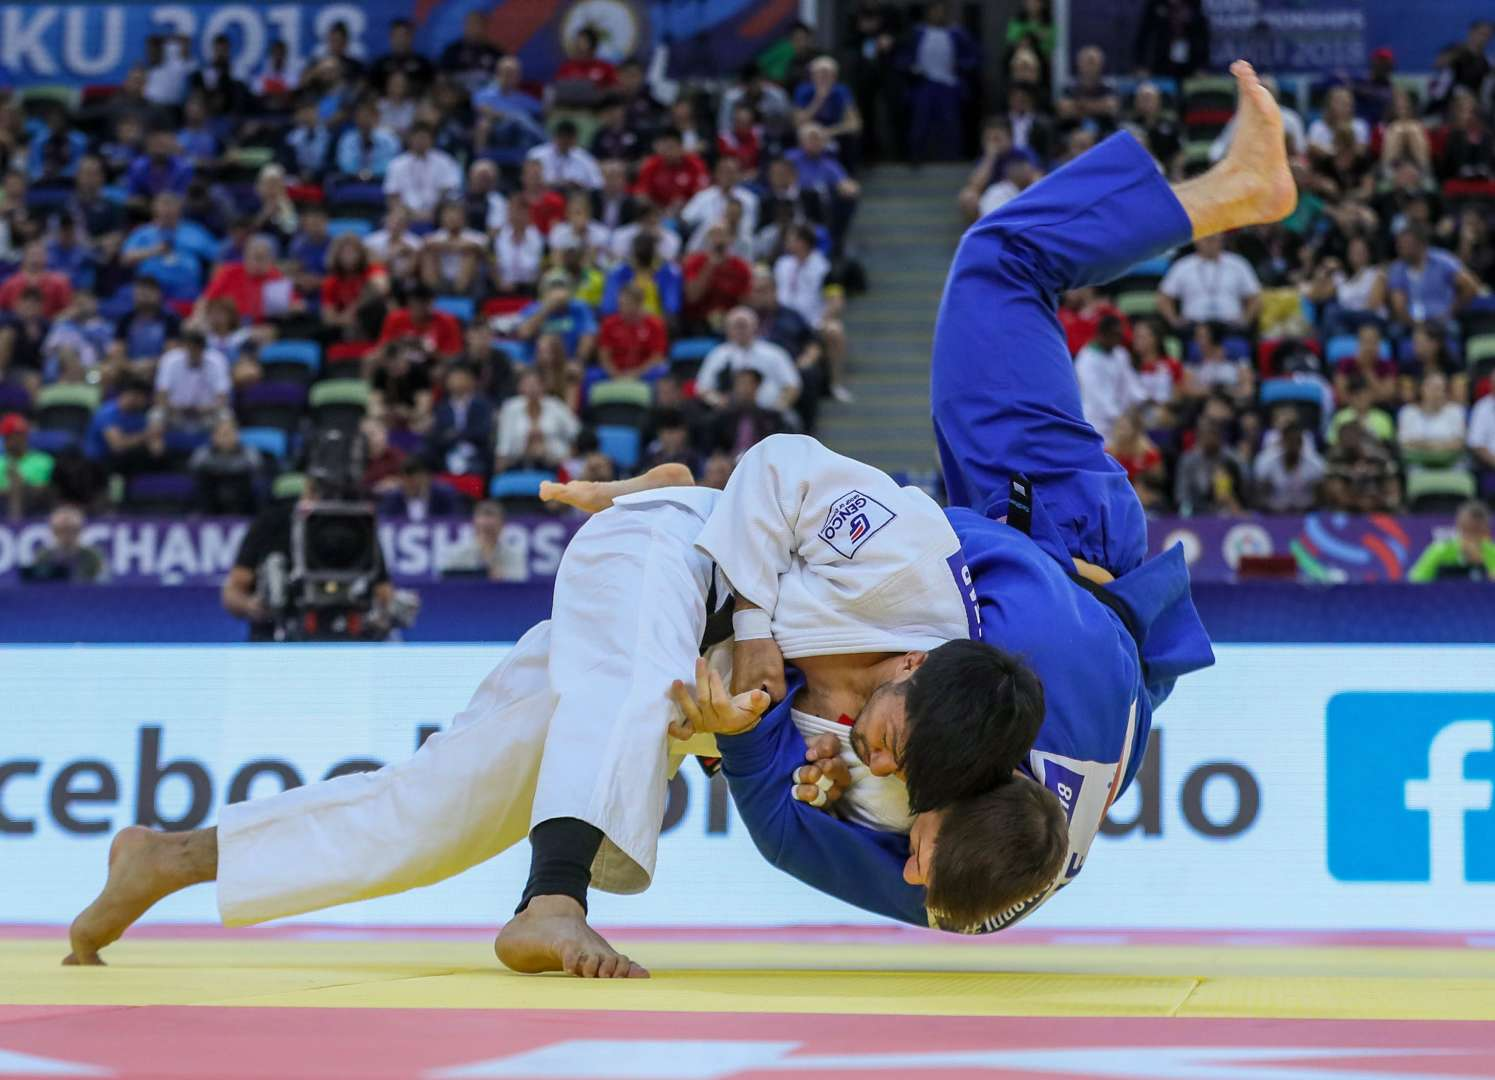 Judo throw during an international competition